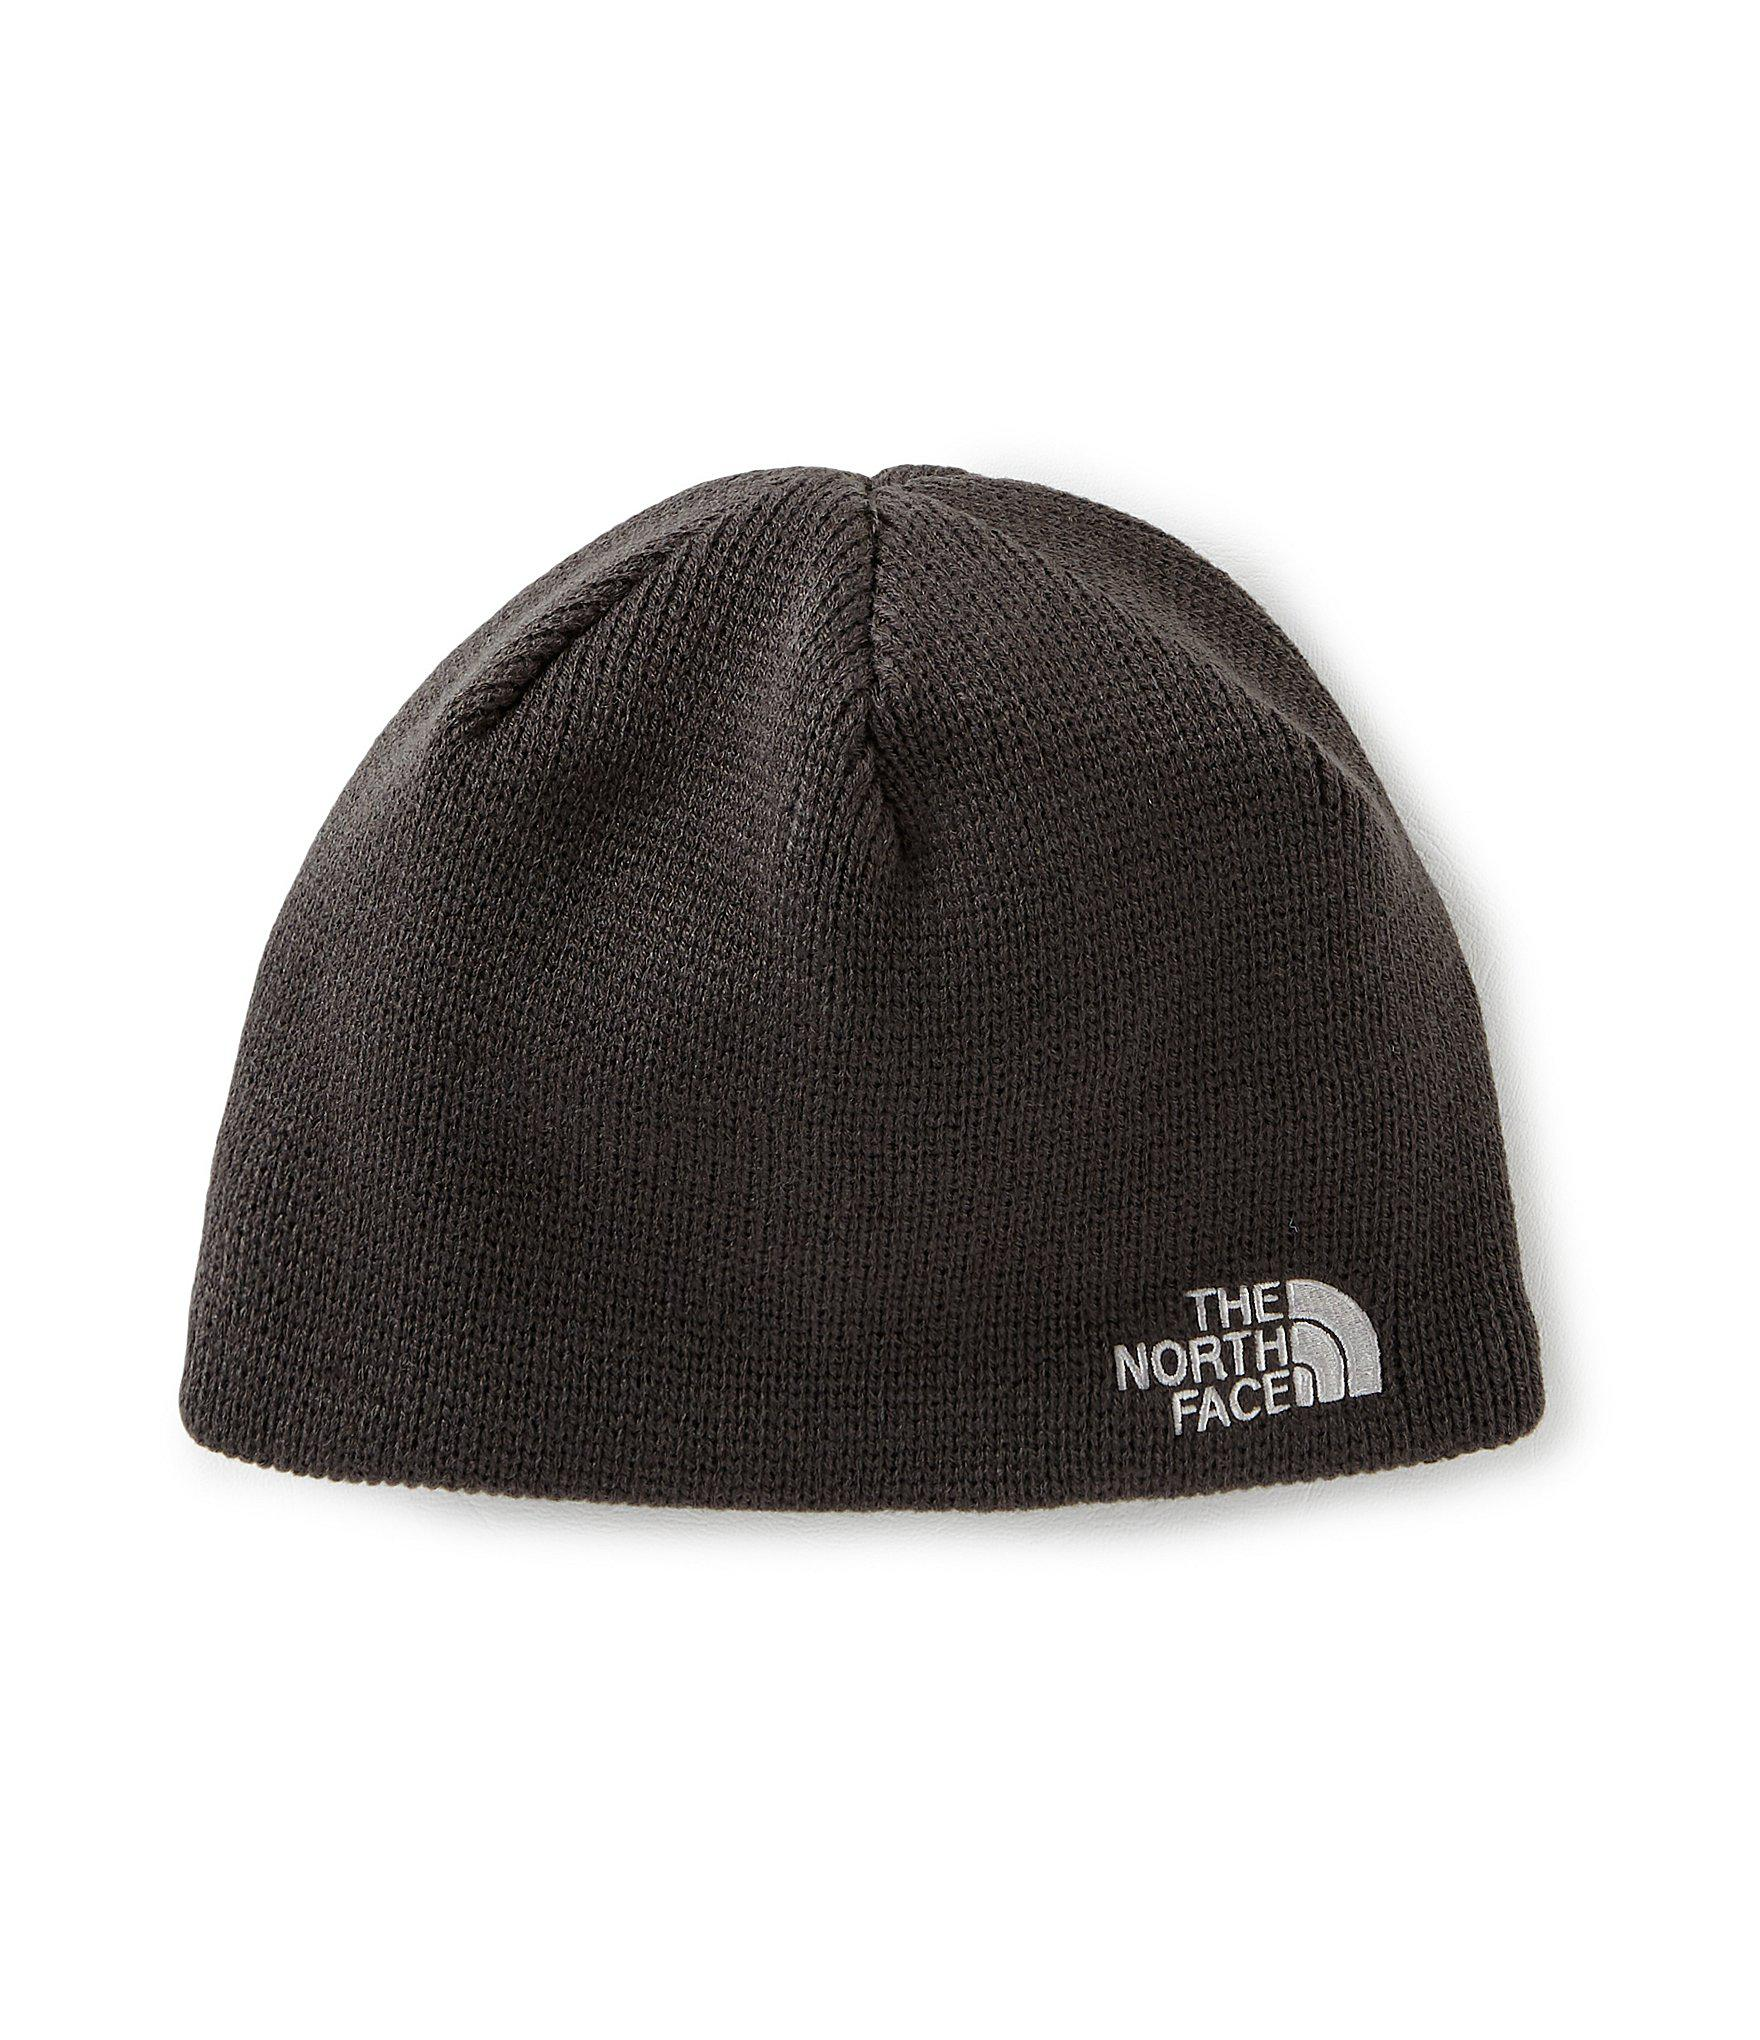 6328995d37a Lyst - The North Face Men s Bones Beanie in Gray for Men